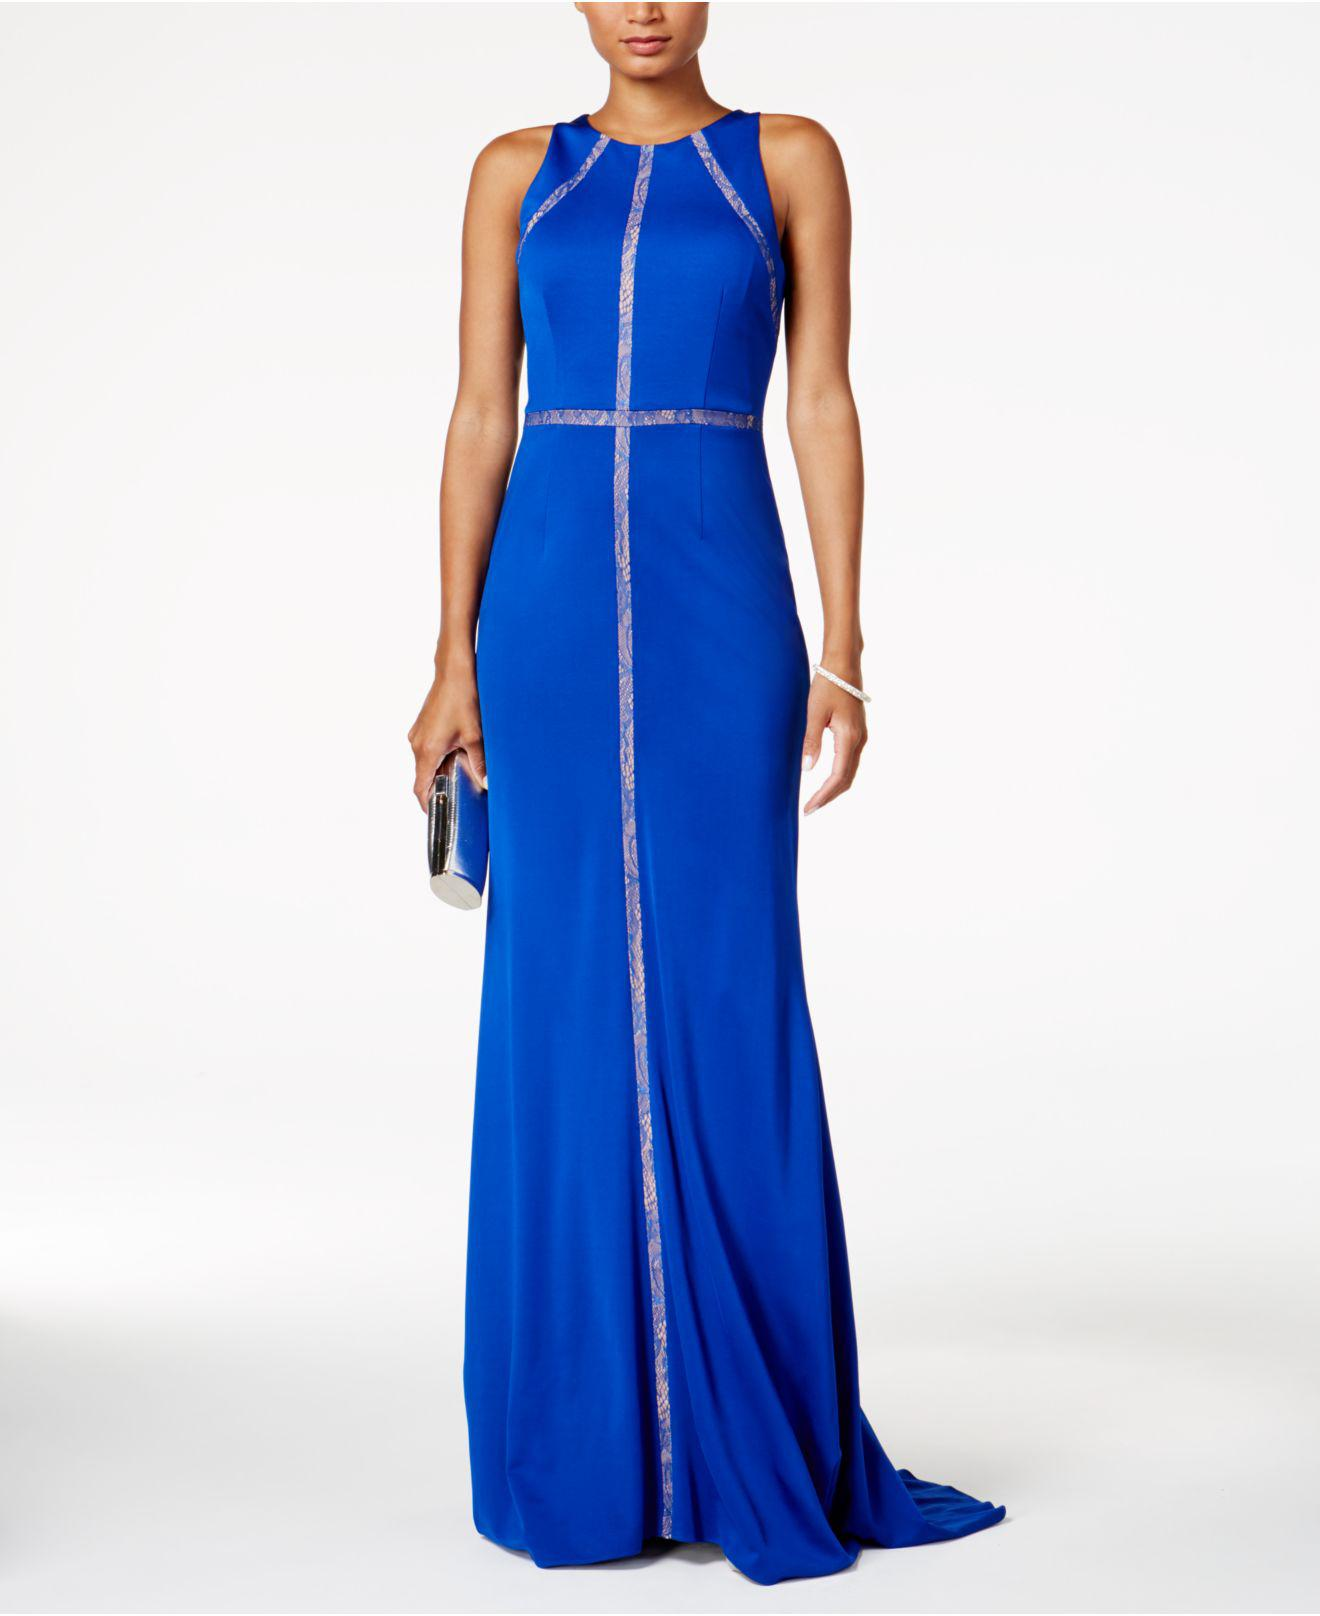 3a49baa5eec Lyst - Adrianna Papell Lace-trim Gown in Blue